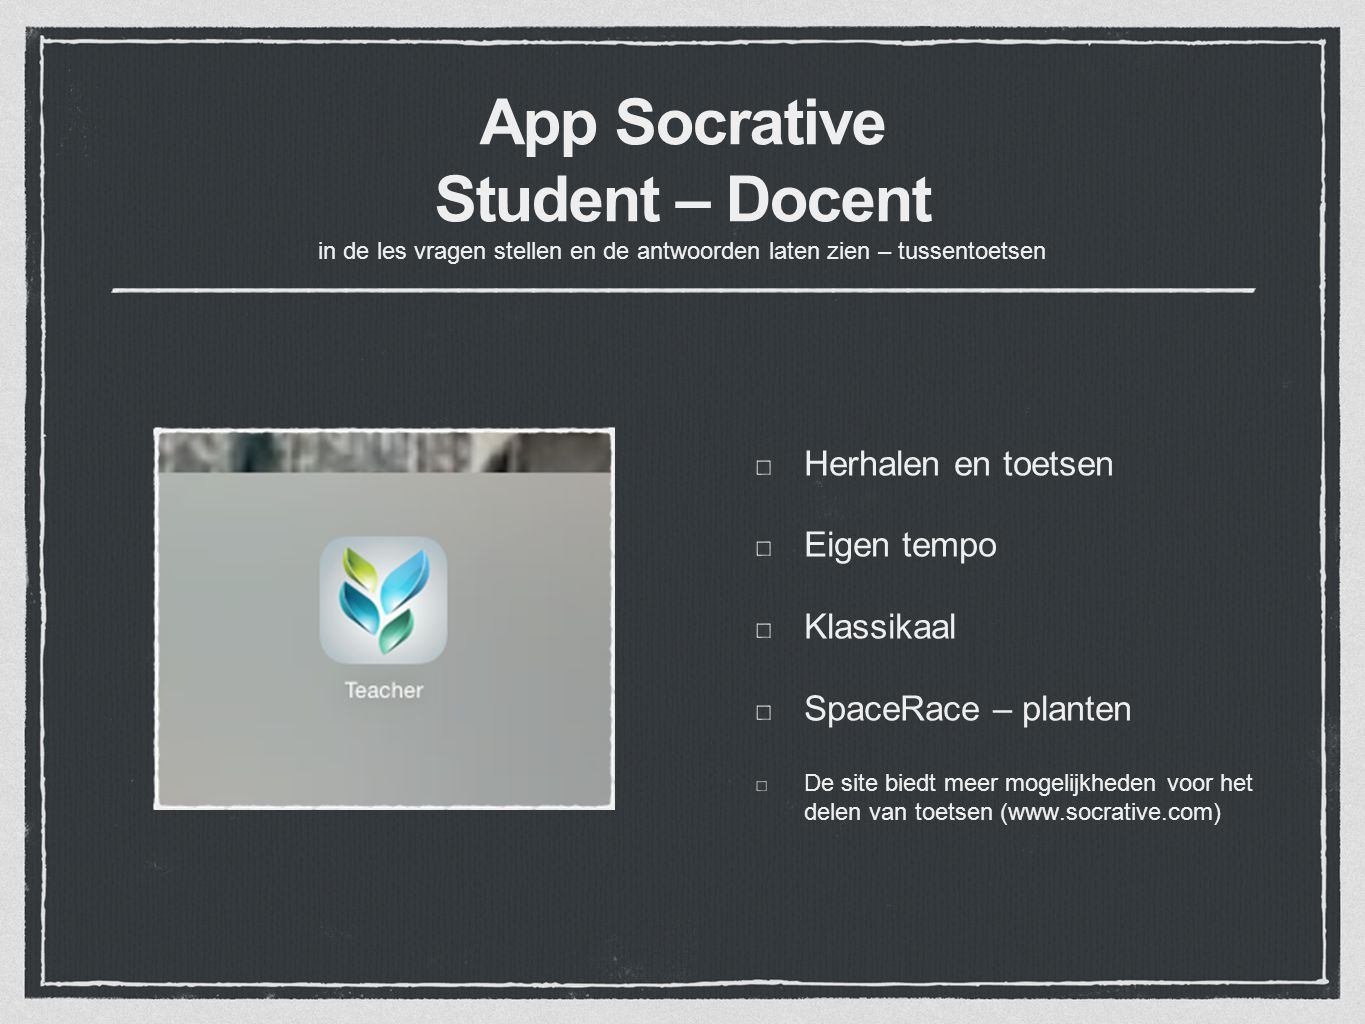 how to send socrative to student